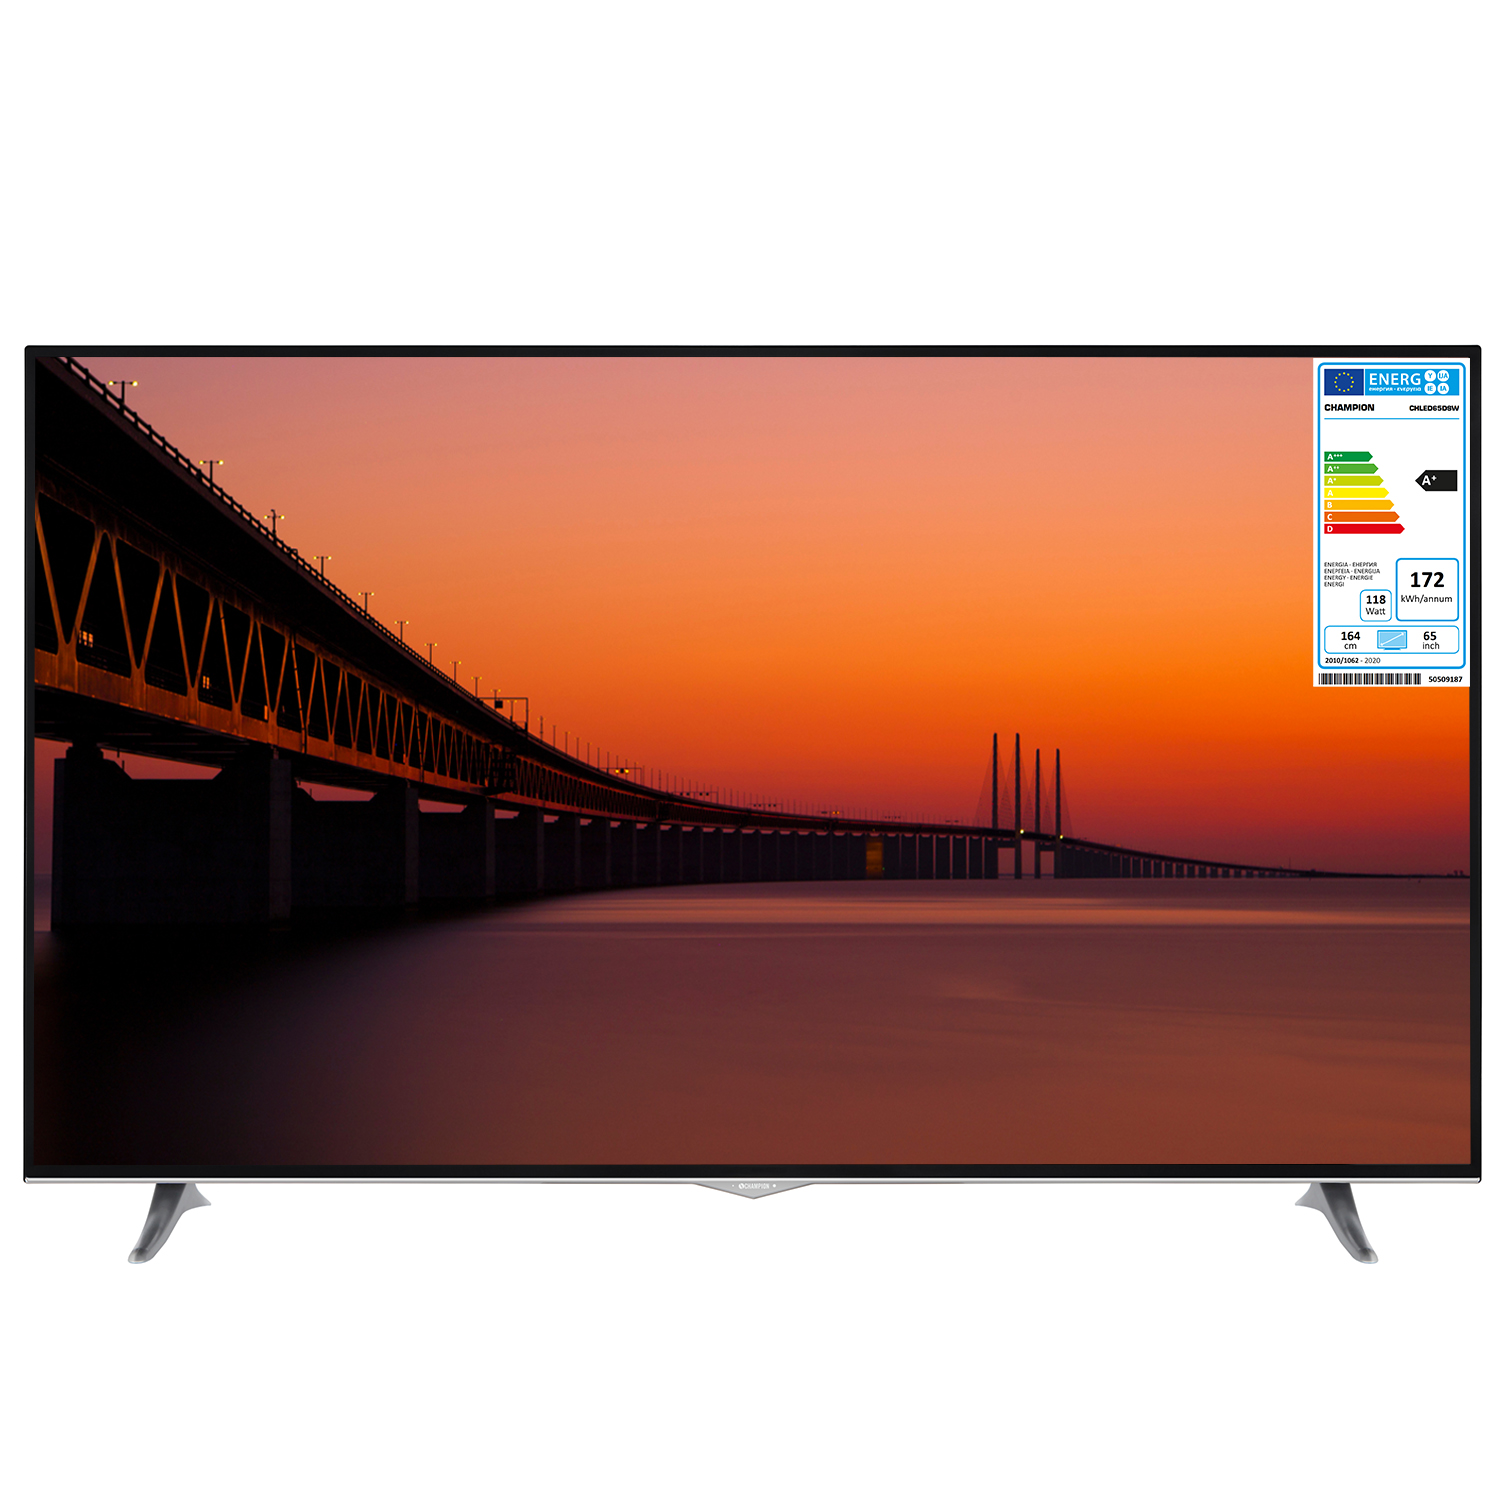 "TV LED 65"" DLED 4K Smart/WiFi"